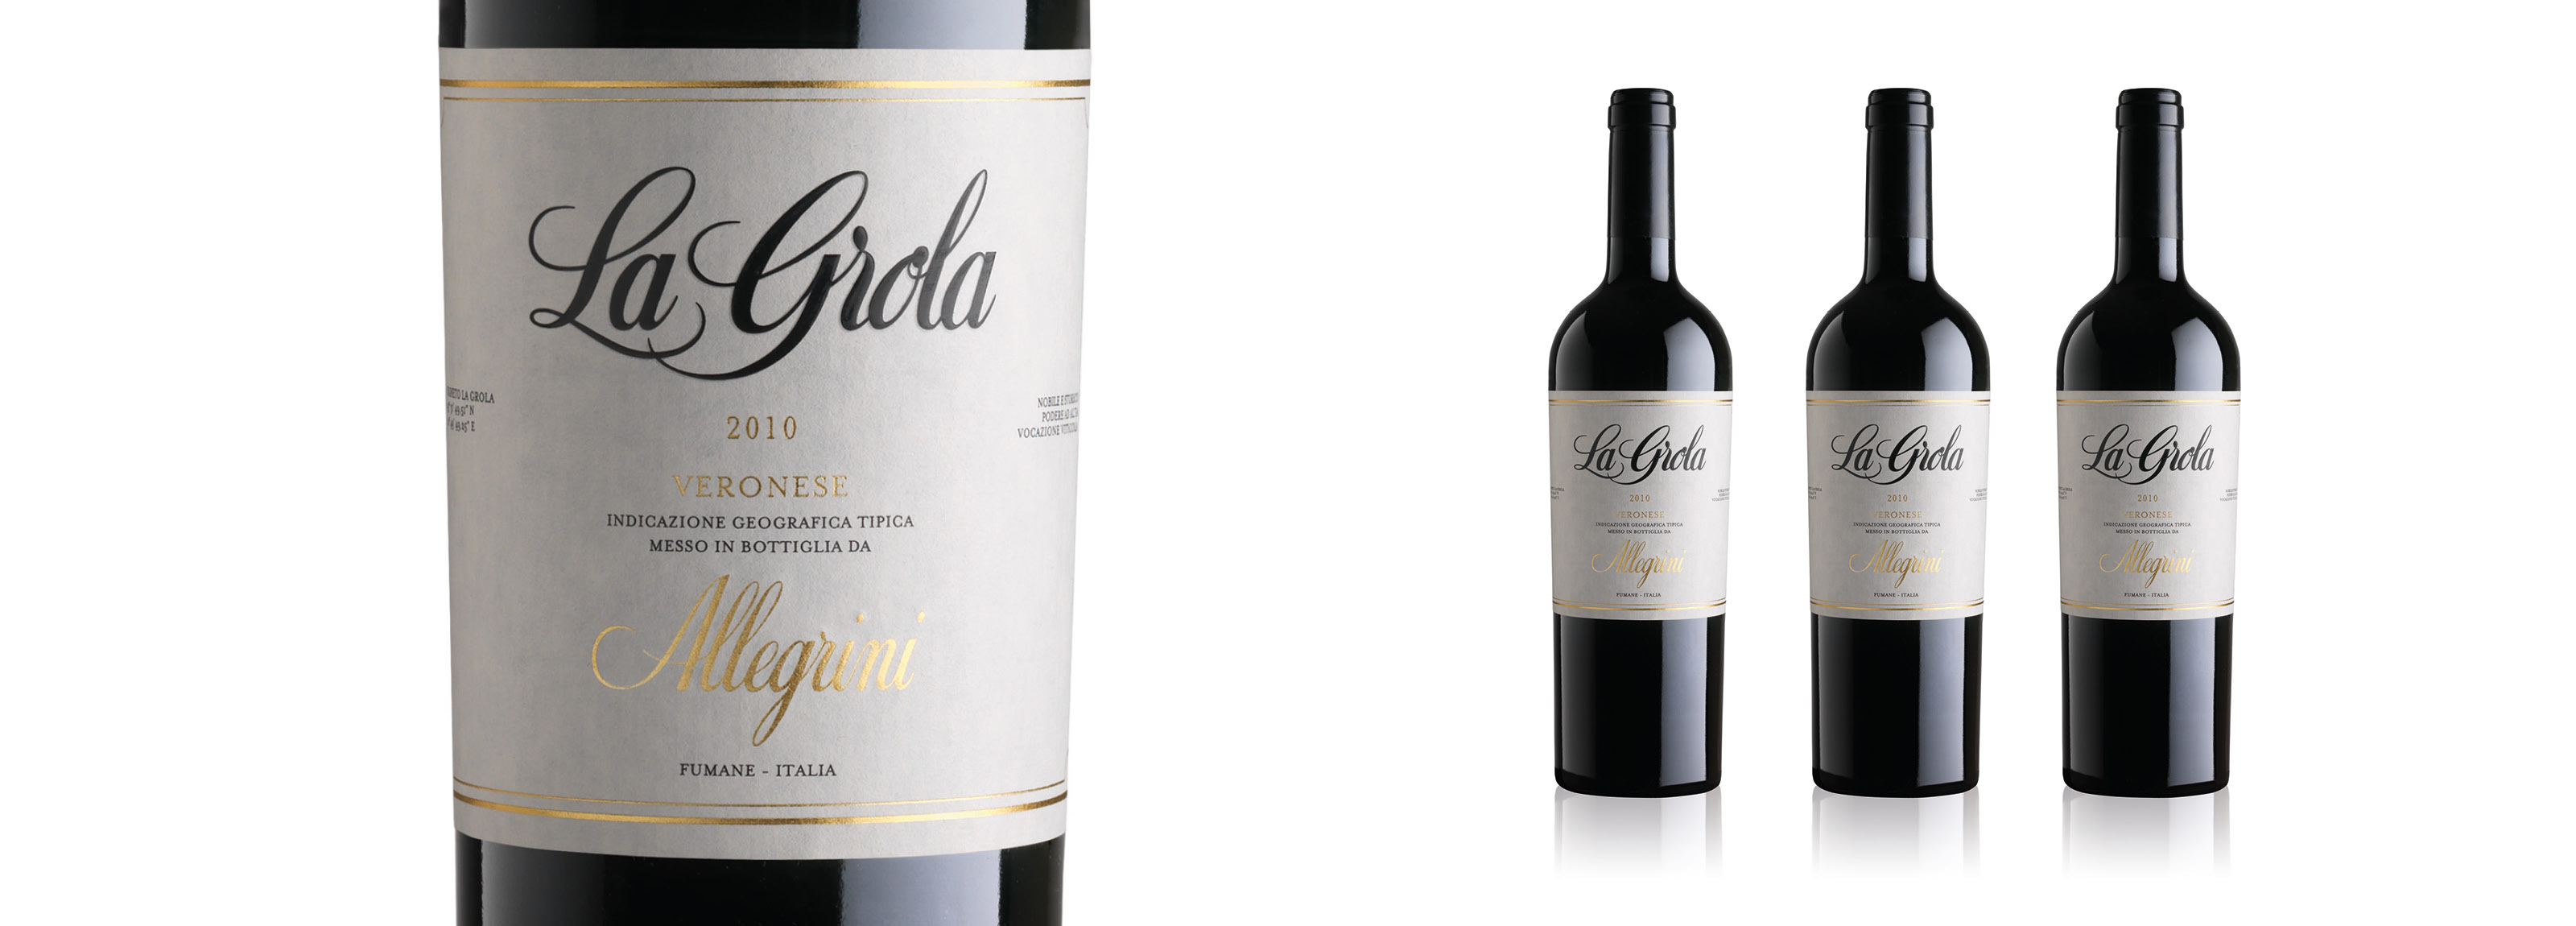 Allegrini - La Grola <br> Redesign of an Iconic Wine Label